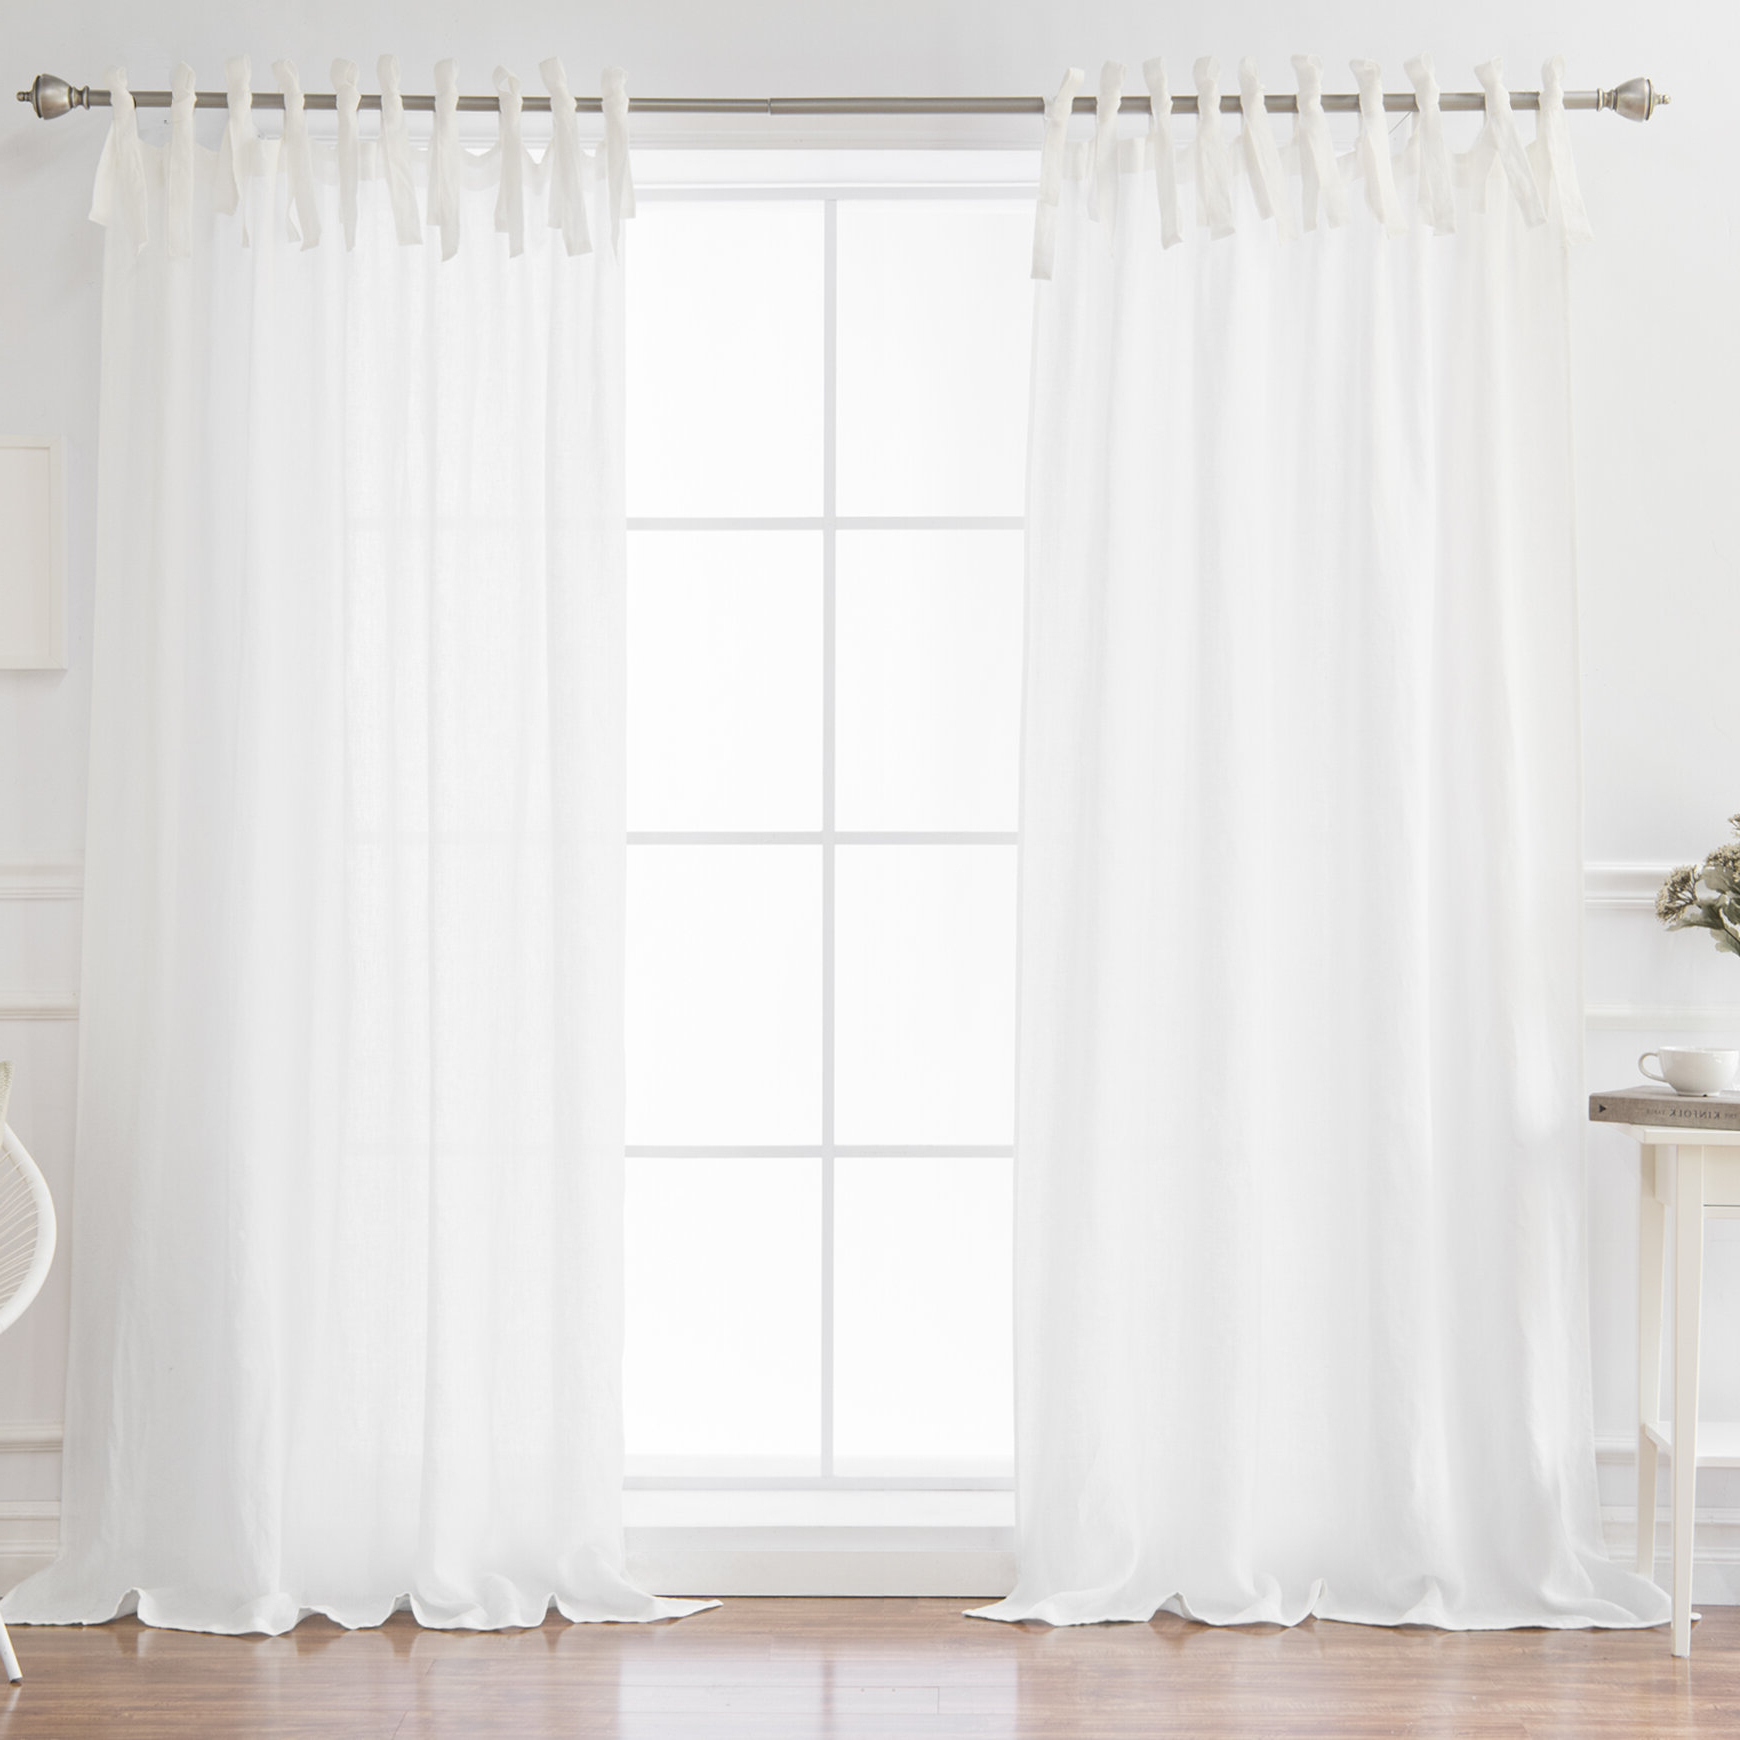 Preferred Dungannon Solid Semi Sheer Tab Top Single Curtain Panel Within Tab Top Sheer Single Curtain Panels (View 3 of 20)